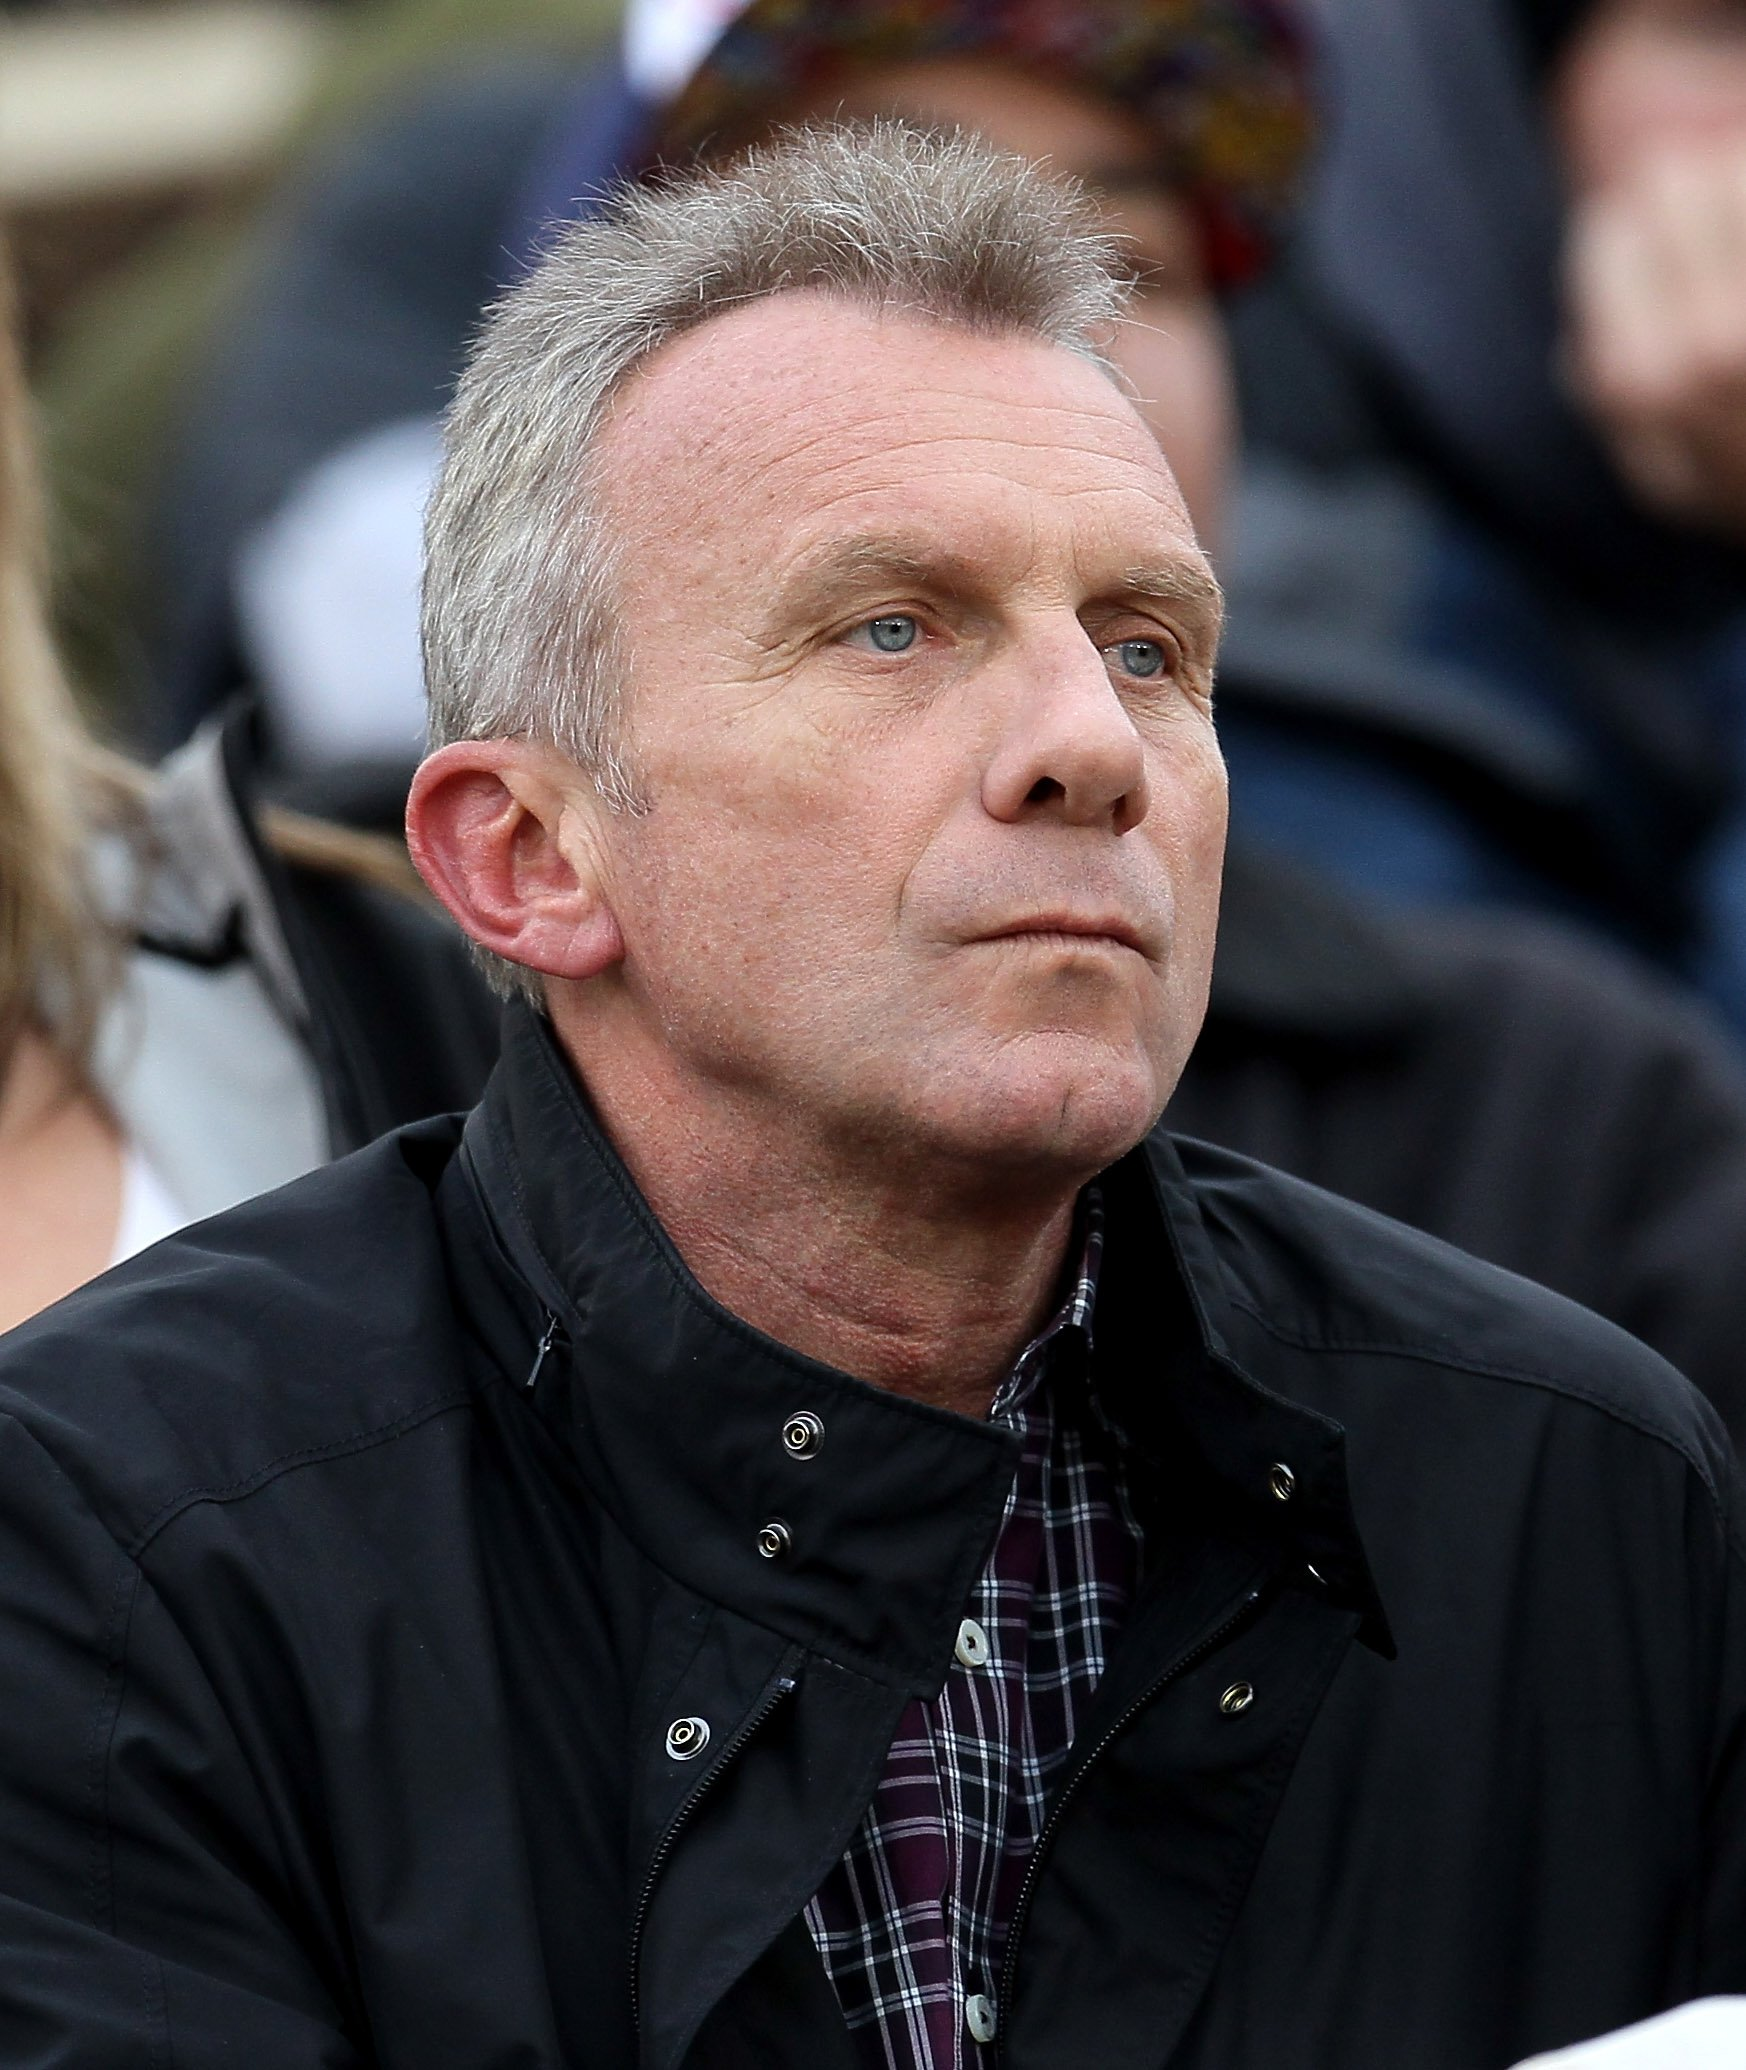 Joe Montana watching a game between the Washington Huskies and the USC Trojans at the Los Angeles Memorial Coliseum on November in Los Angeles, California | Photo: Stephen Dunn/Getty Images